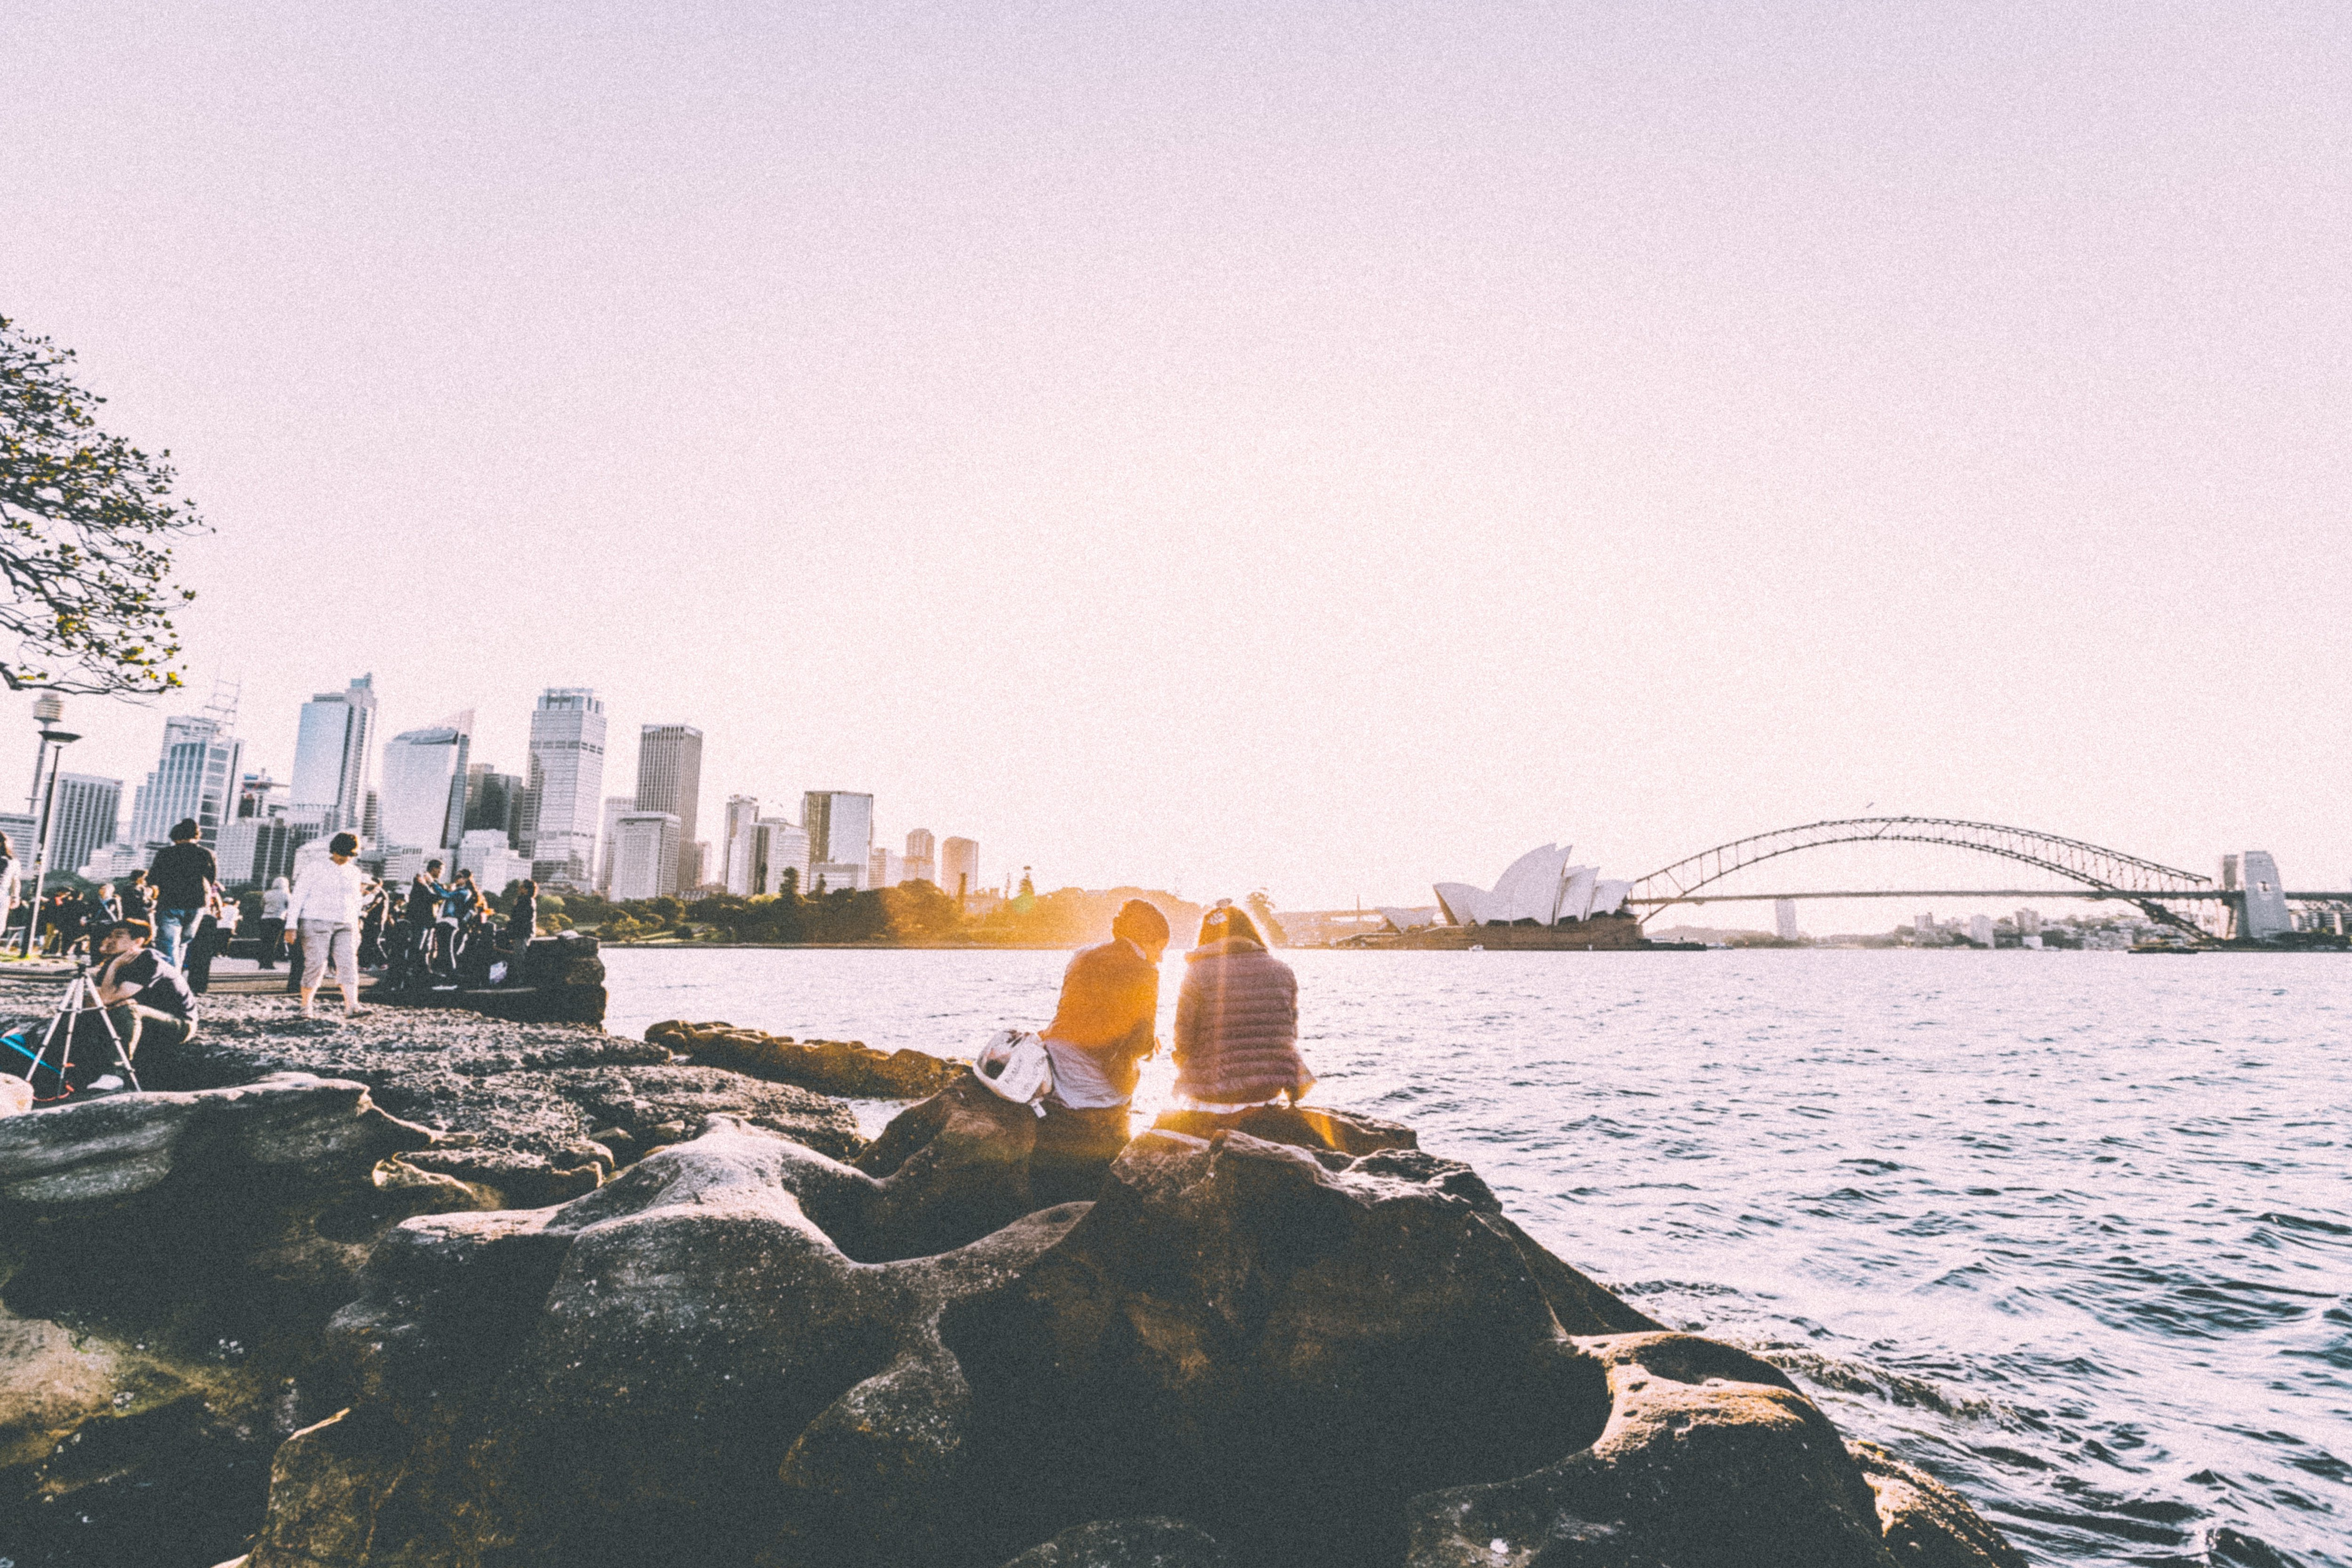 Age Limit For Australian Working Holiday Visa Increased To 35